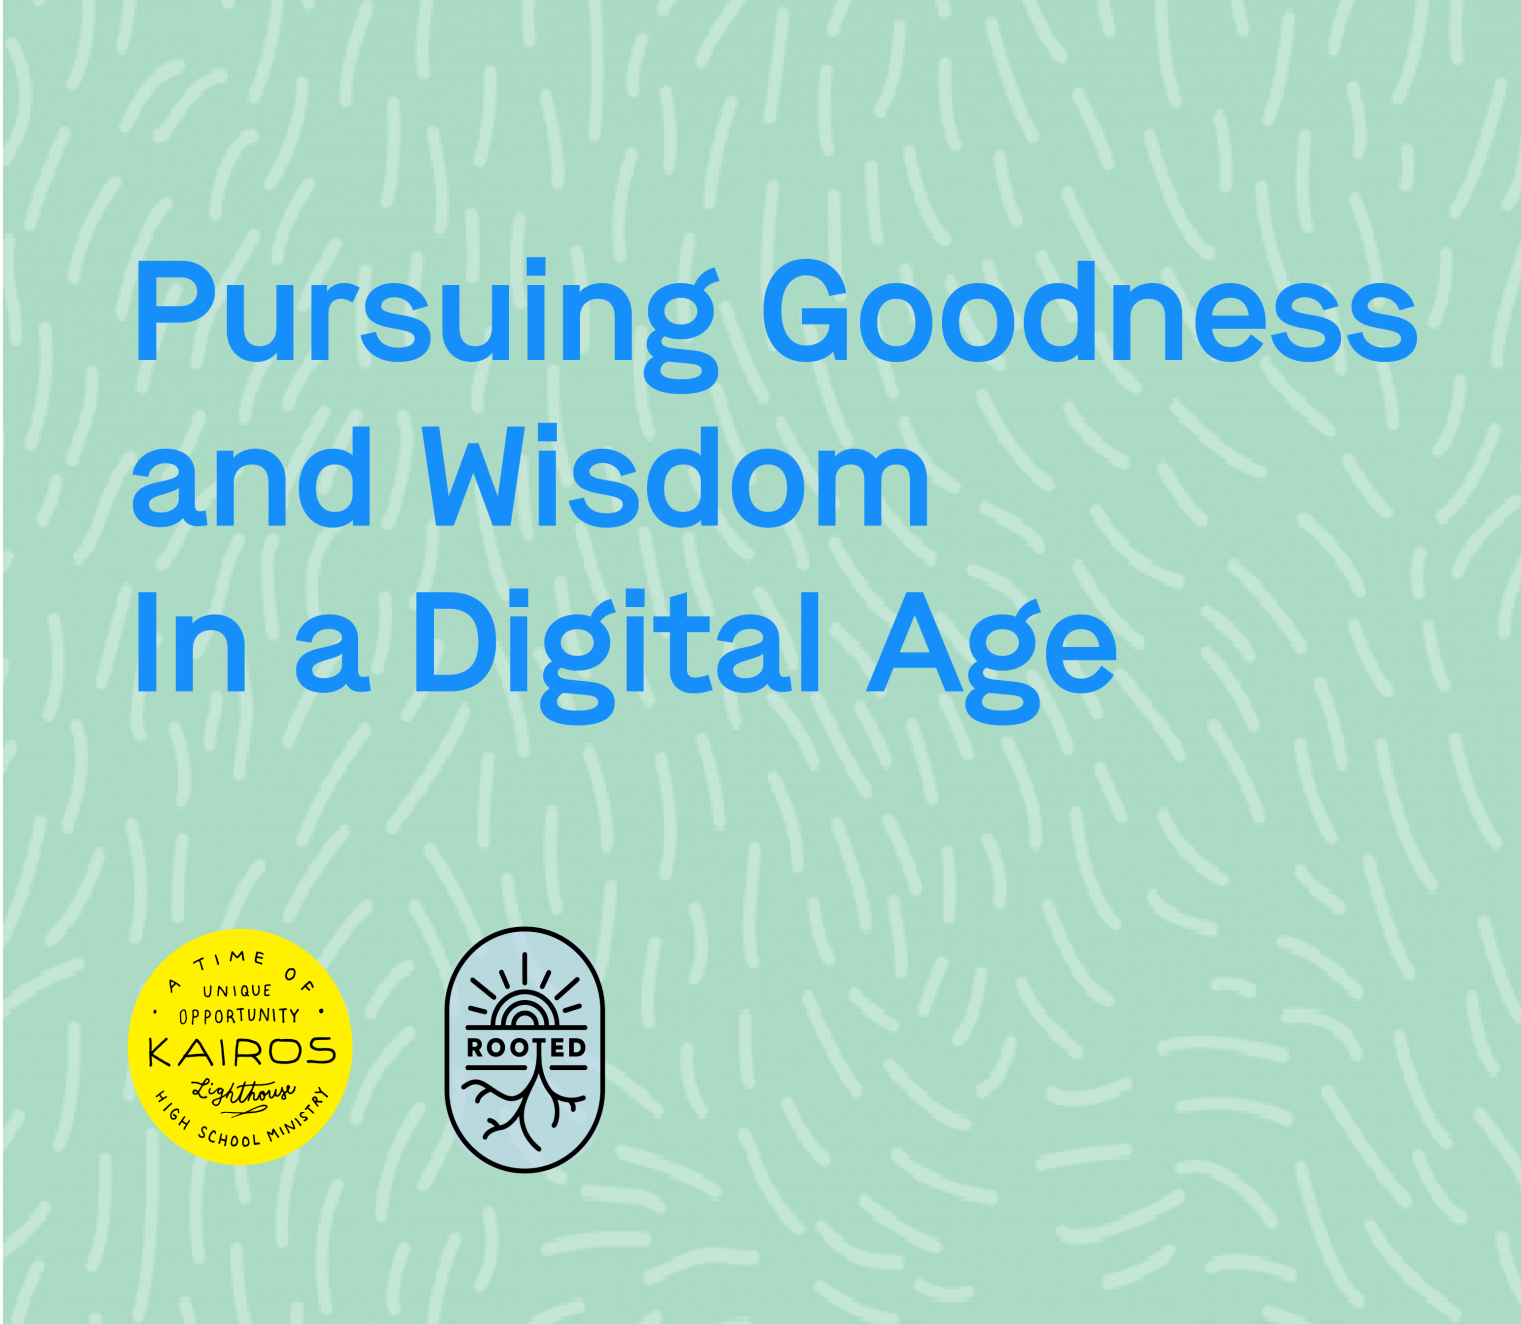 Pursuing Goodness and Wisdom In a Digital Age